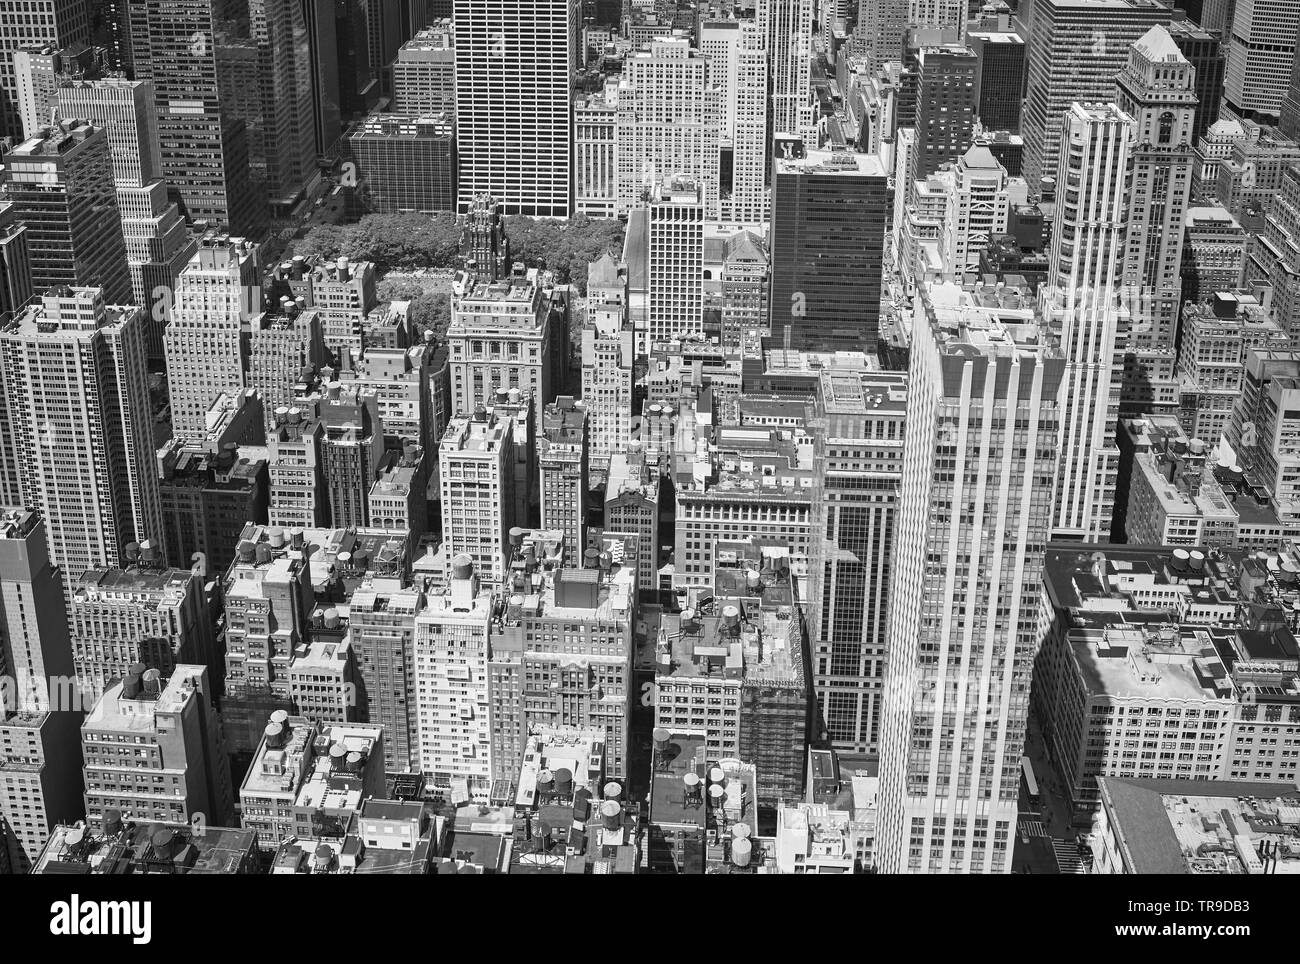 Black and white aerial photo stock photos black and white aerial